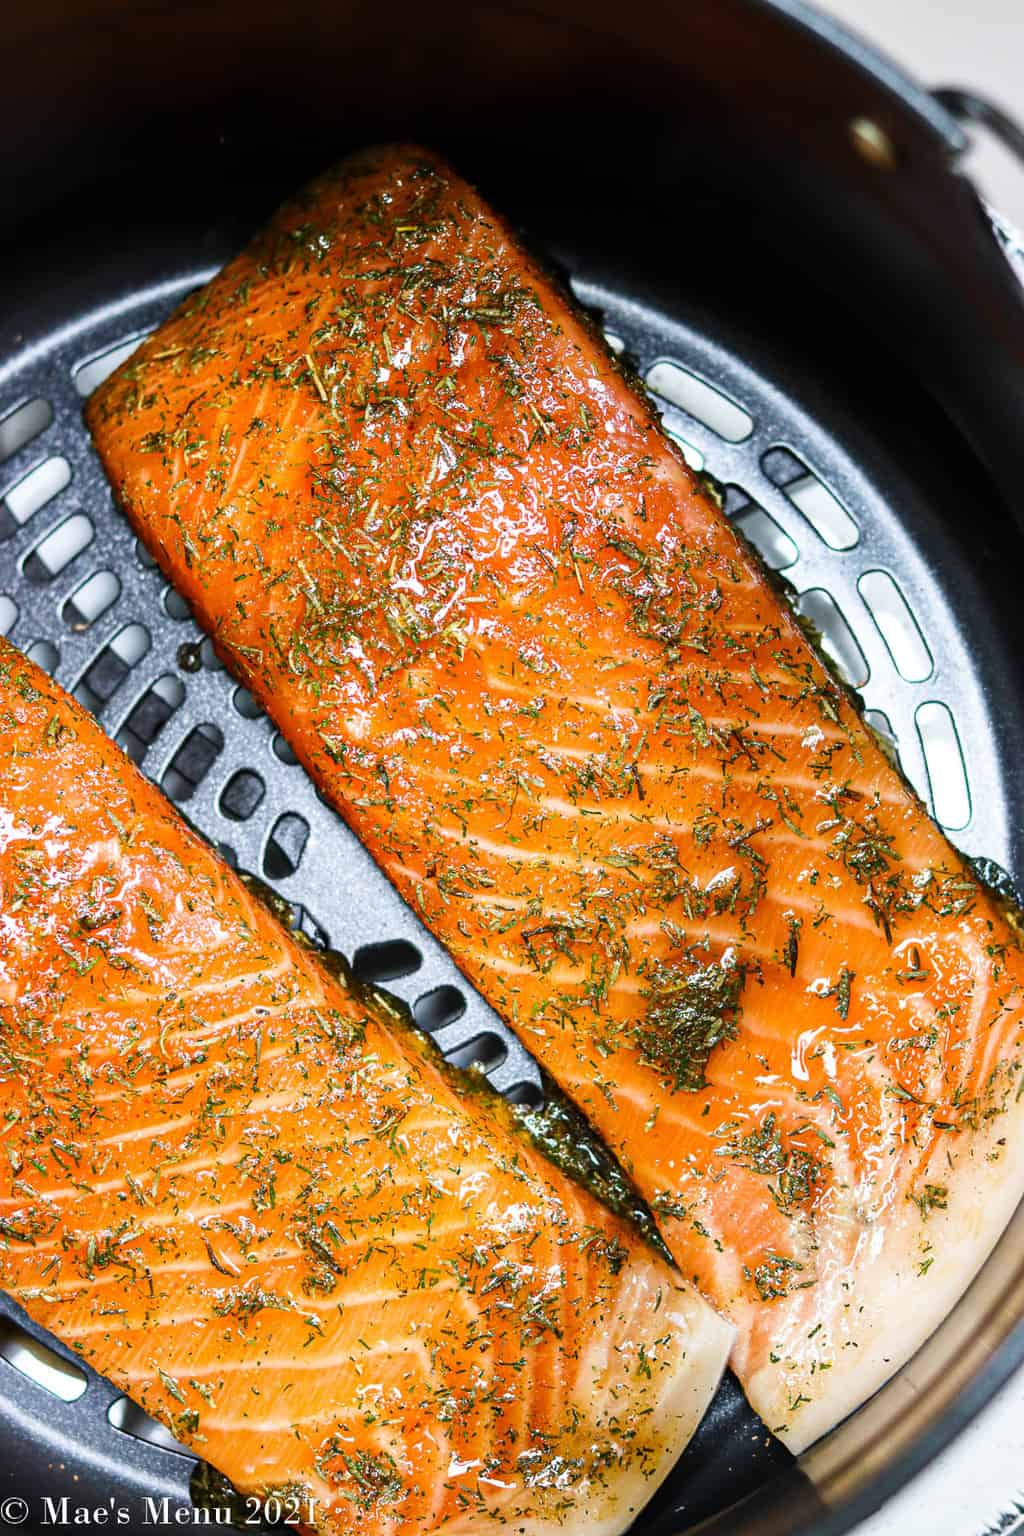 Two large spices of salmon brushed with glaze in an air fryer basket